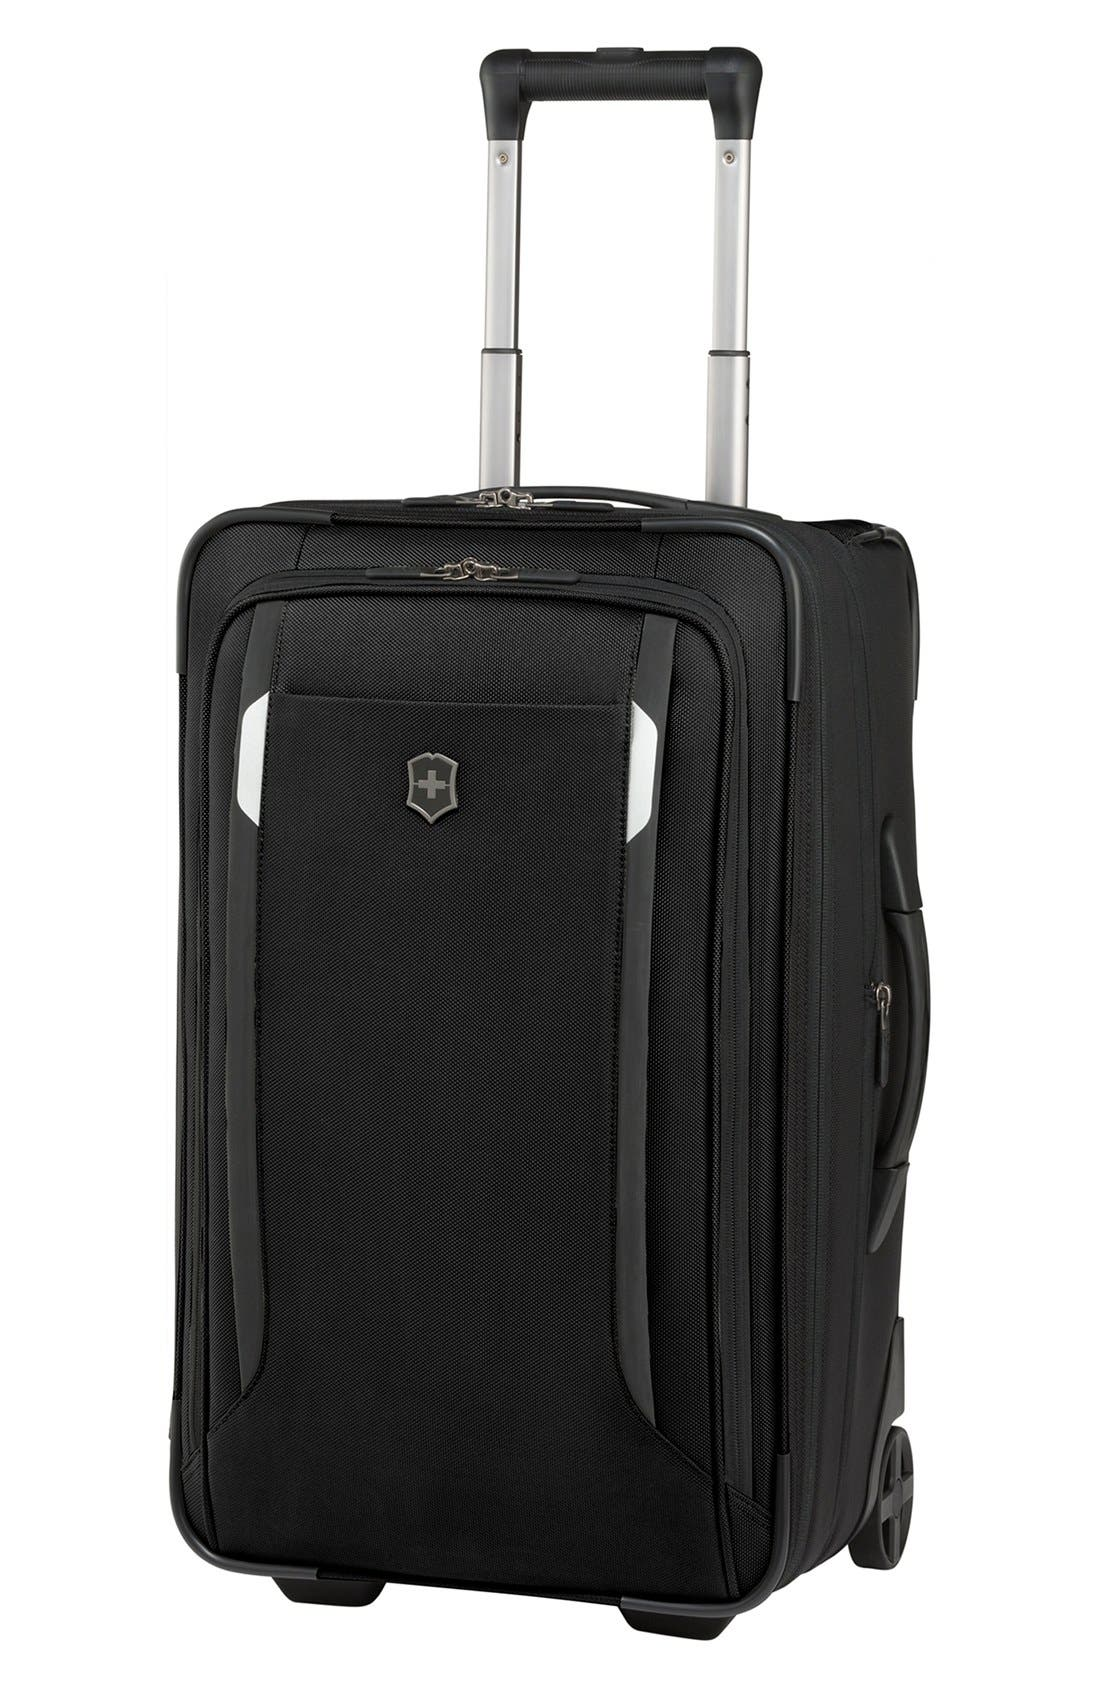 Alternate Image 1 Selected - Victorinox Swiss Army® WT 5.0 Wheeled 22-Inch Carry-On